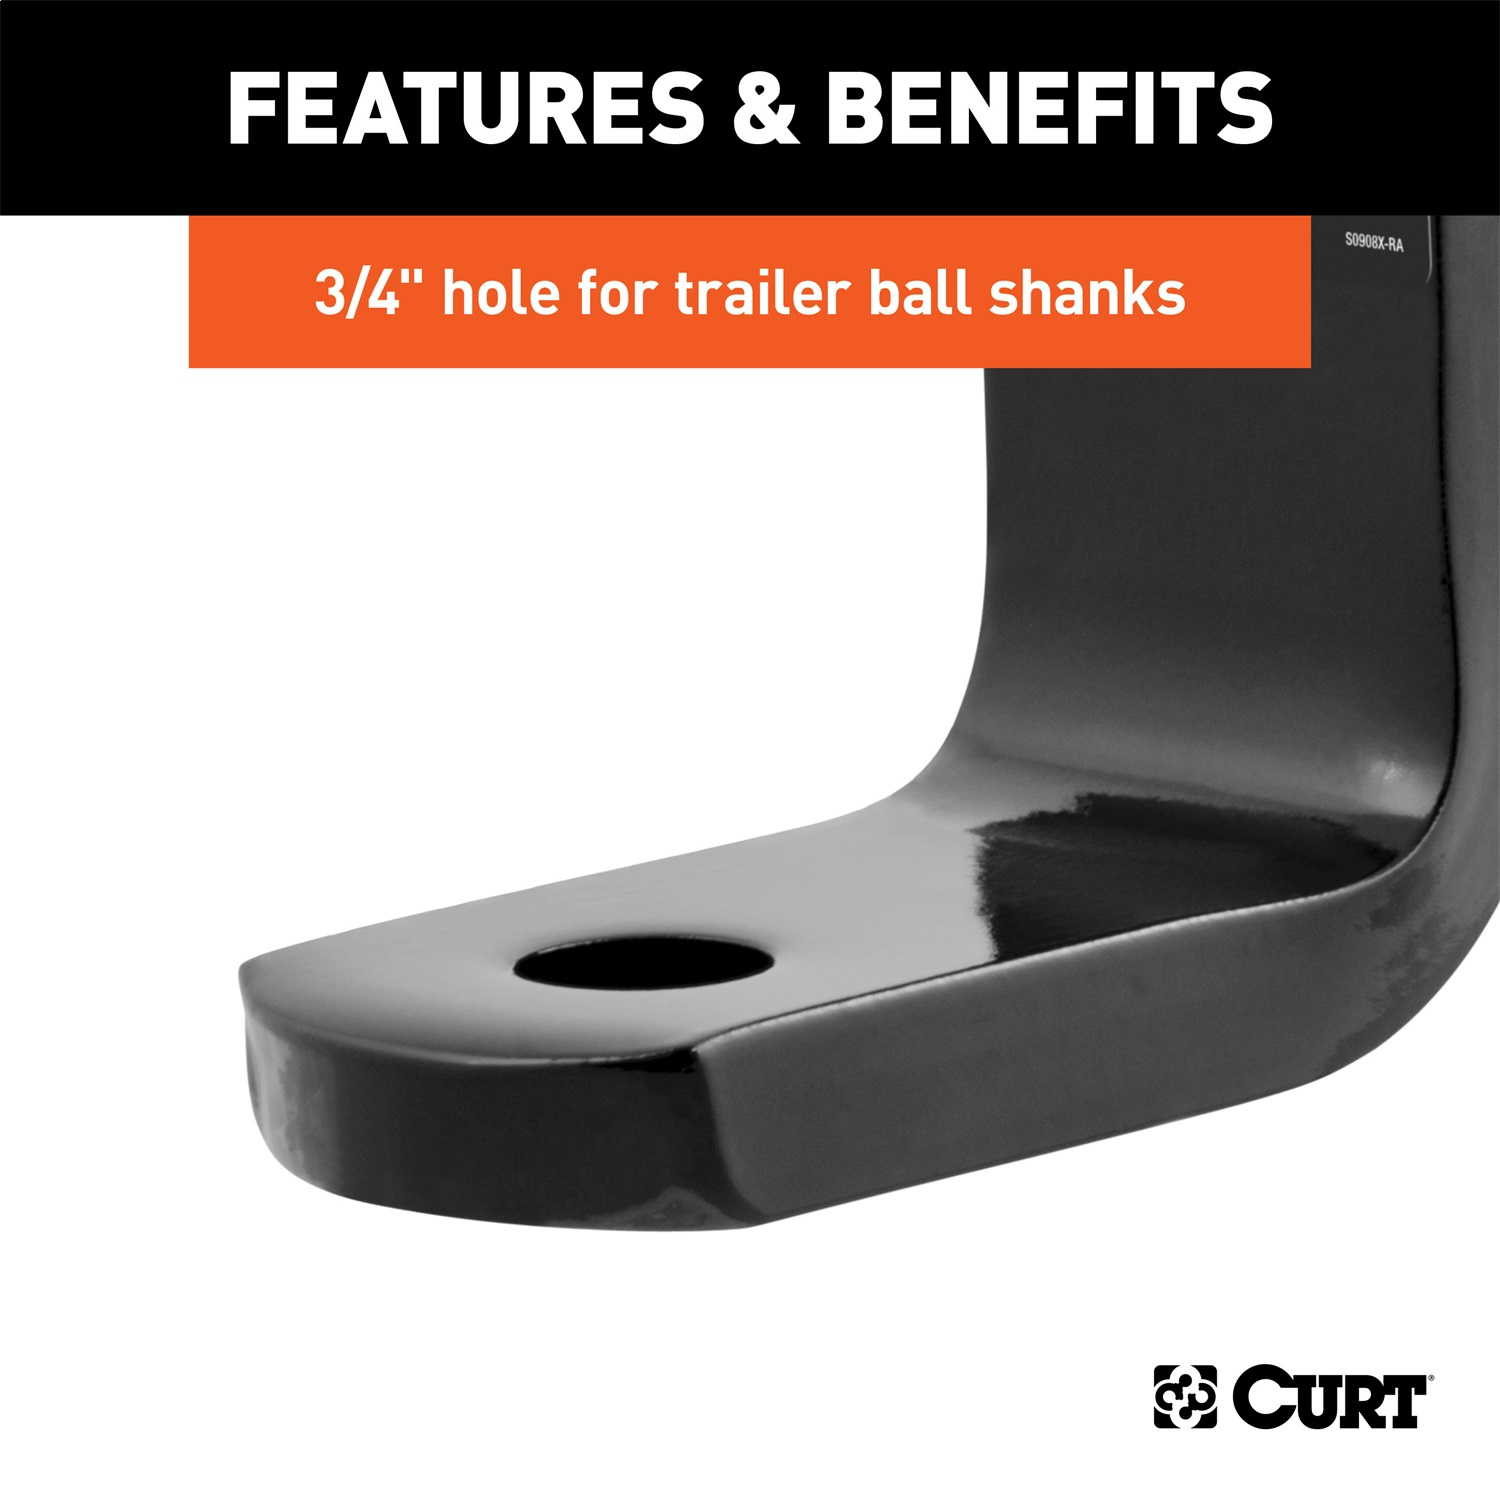 3//4-Inch Ball Hole 2-5//8-Inch Rise 3-1//4-Inch Drop 2,000 lbs Fits 1-1//4-Inch Receiver CURT 45026 Class 1 Trailer Hitch Ball Mount GTW